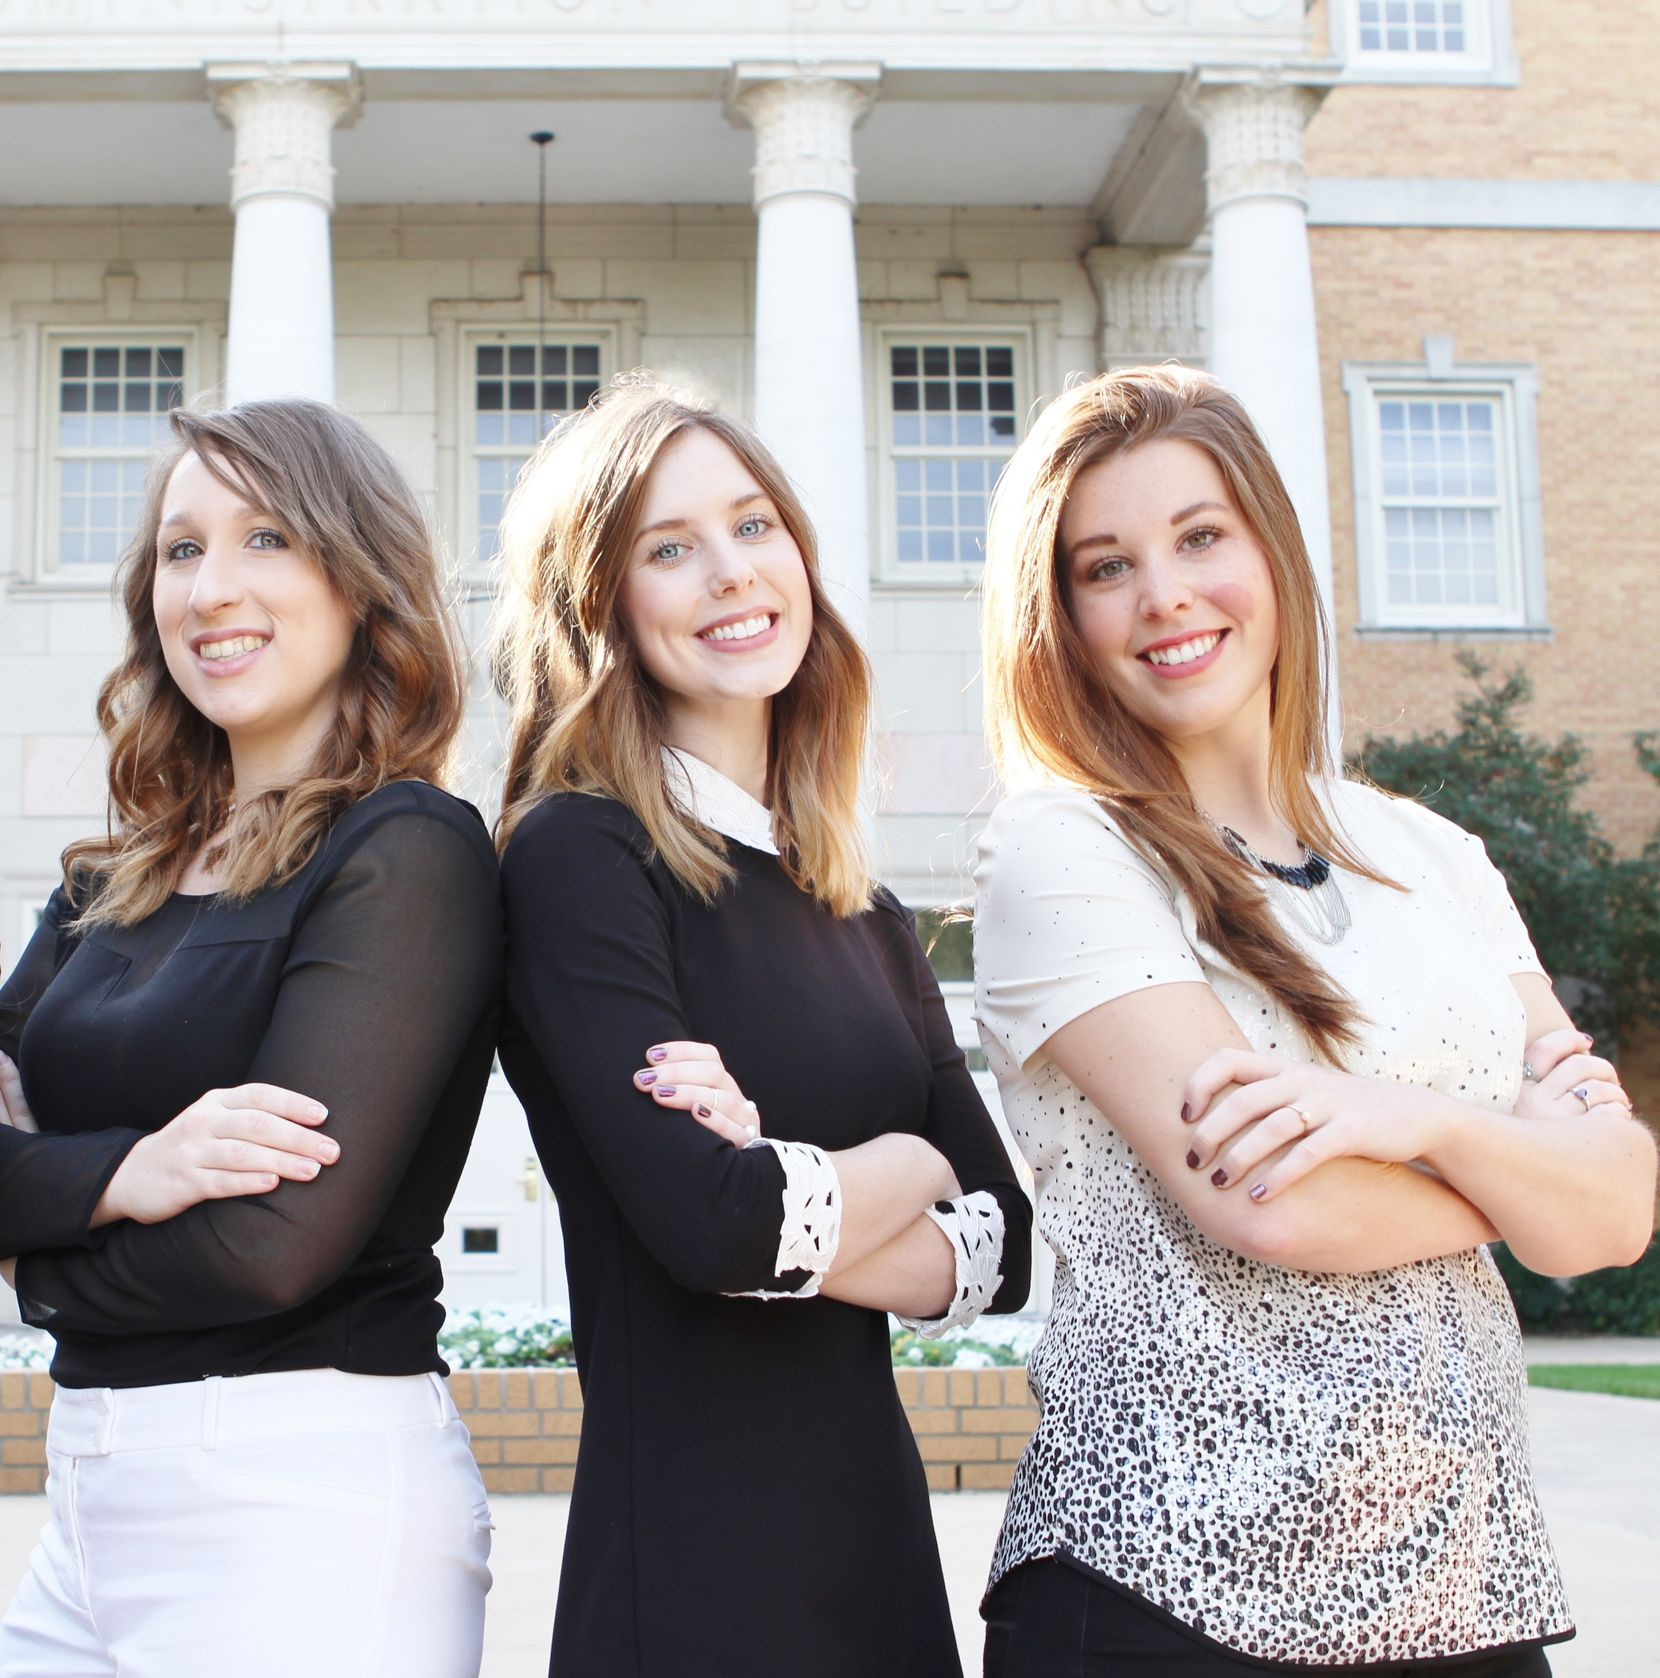 University of North Texas 2016 graduates with majors in merchandising and digital retailing students Katelyn Patrick, Nichole Fallis and Mckenzie Hibler.Courtesy photo University of North Texas